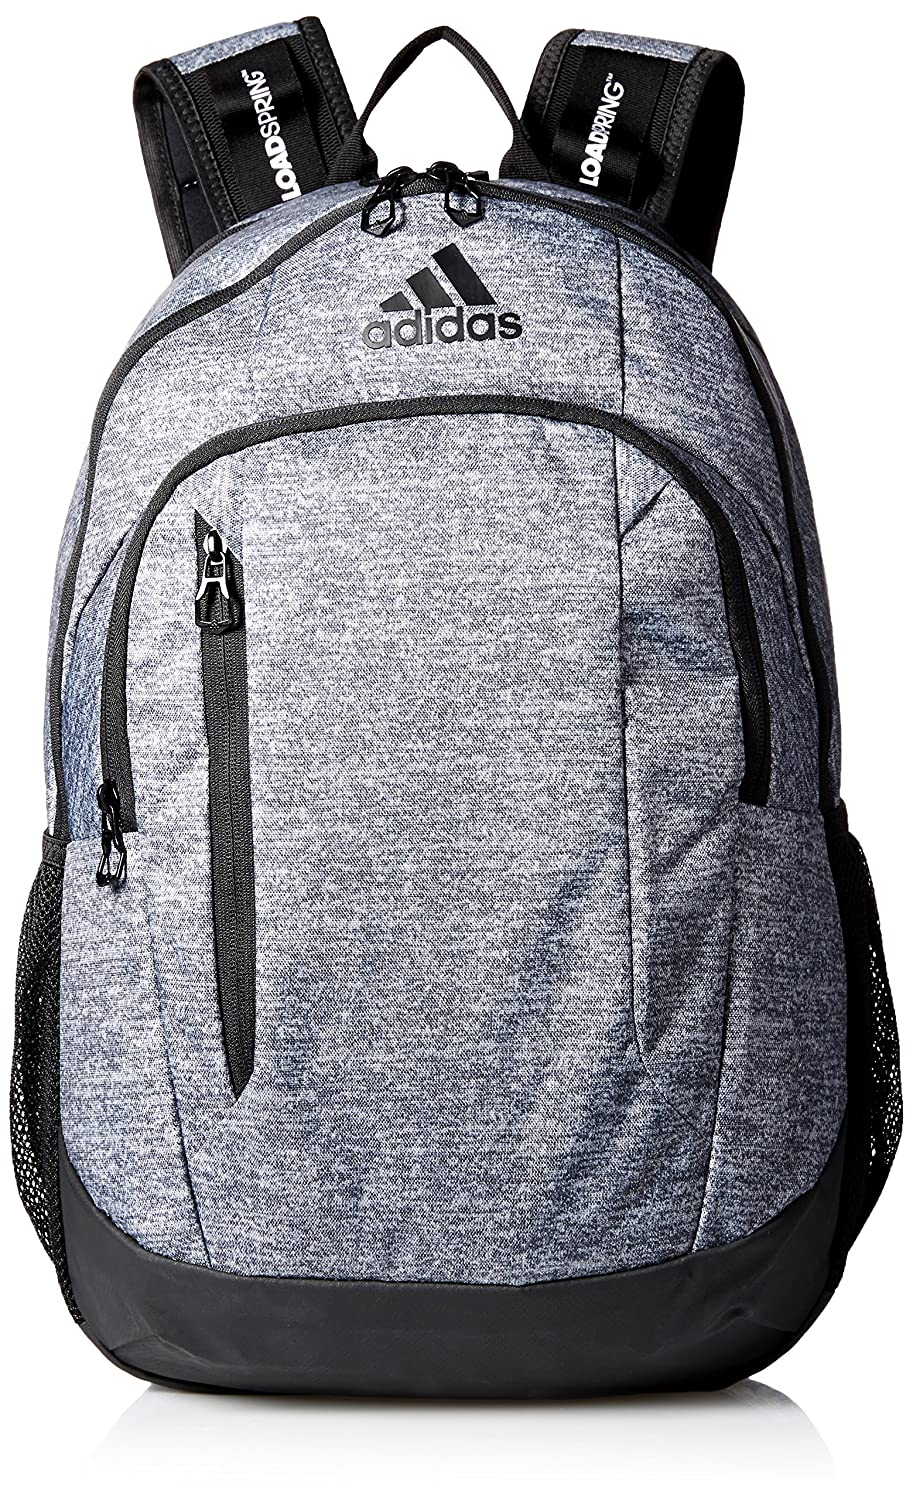 adidas Mission Backpack Black One Size Agron Inc (adidas Bags) 975699